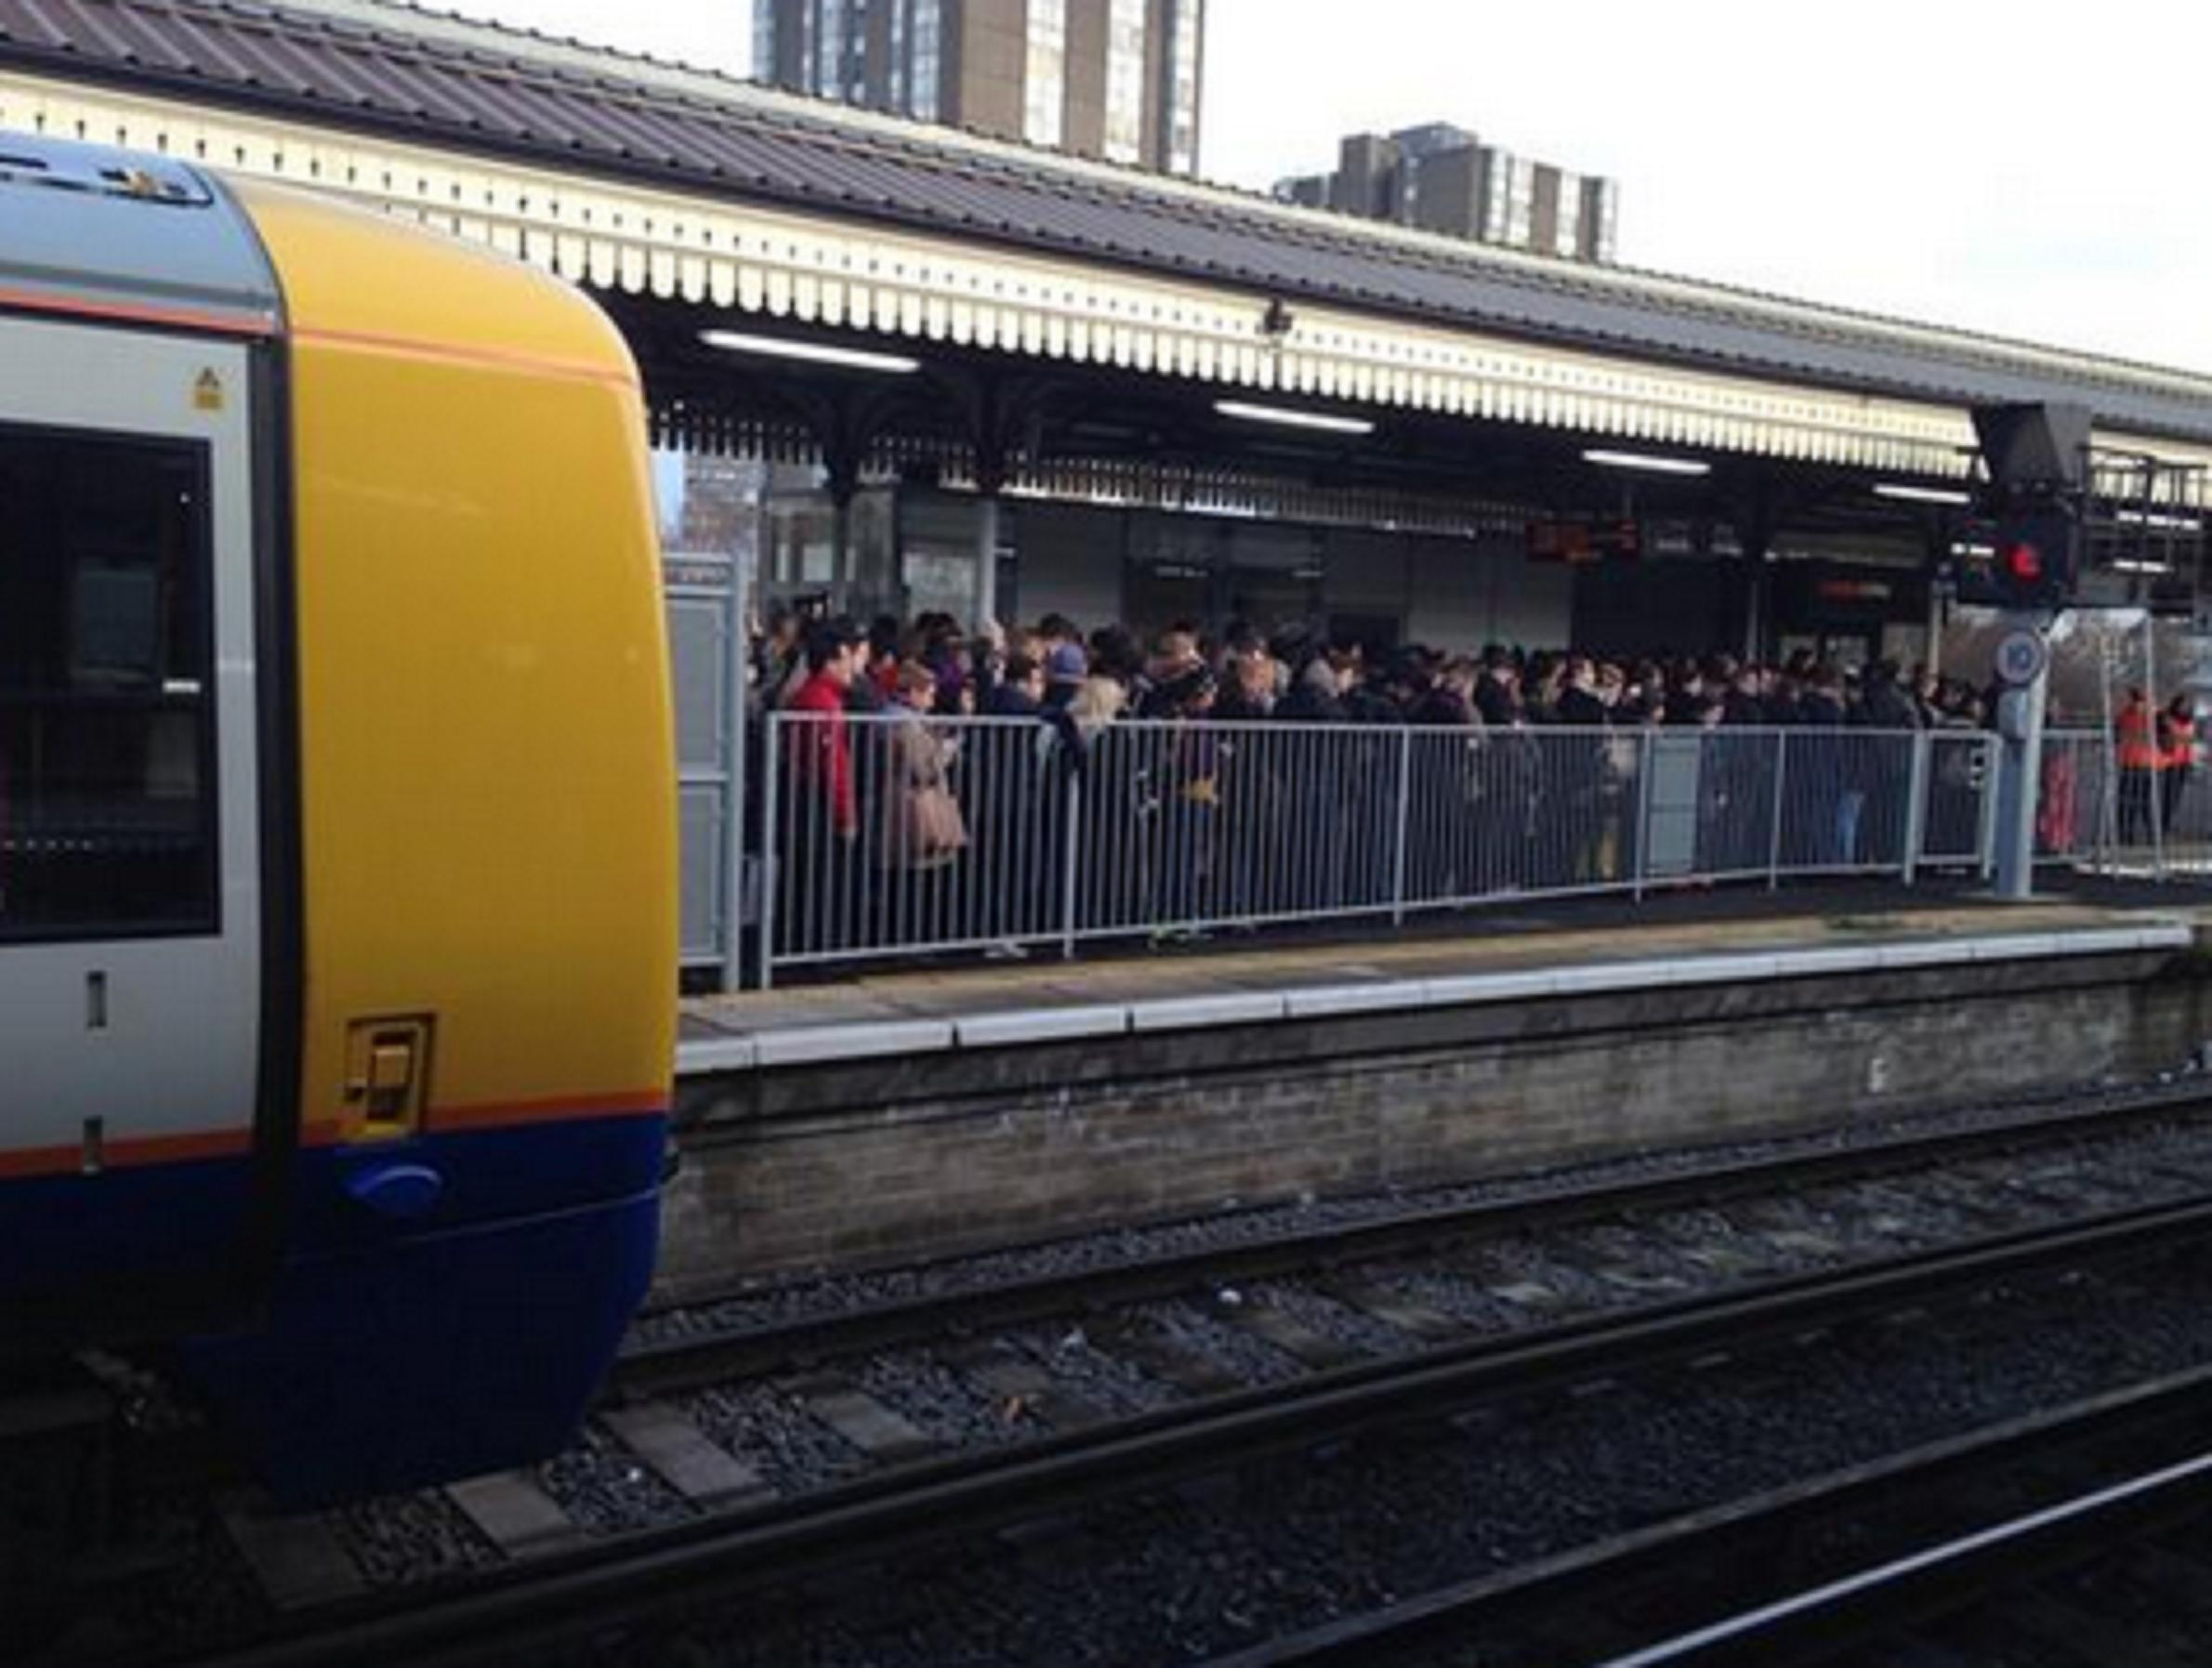 Clapham Junction station this morning. Photo: Ben Whitelaw